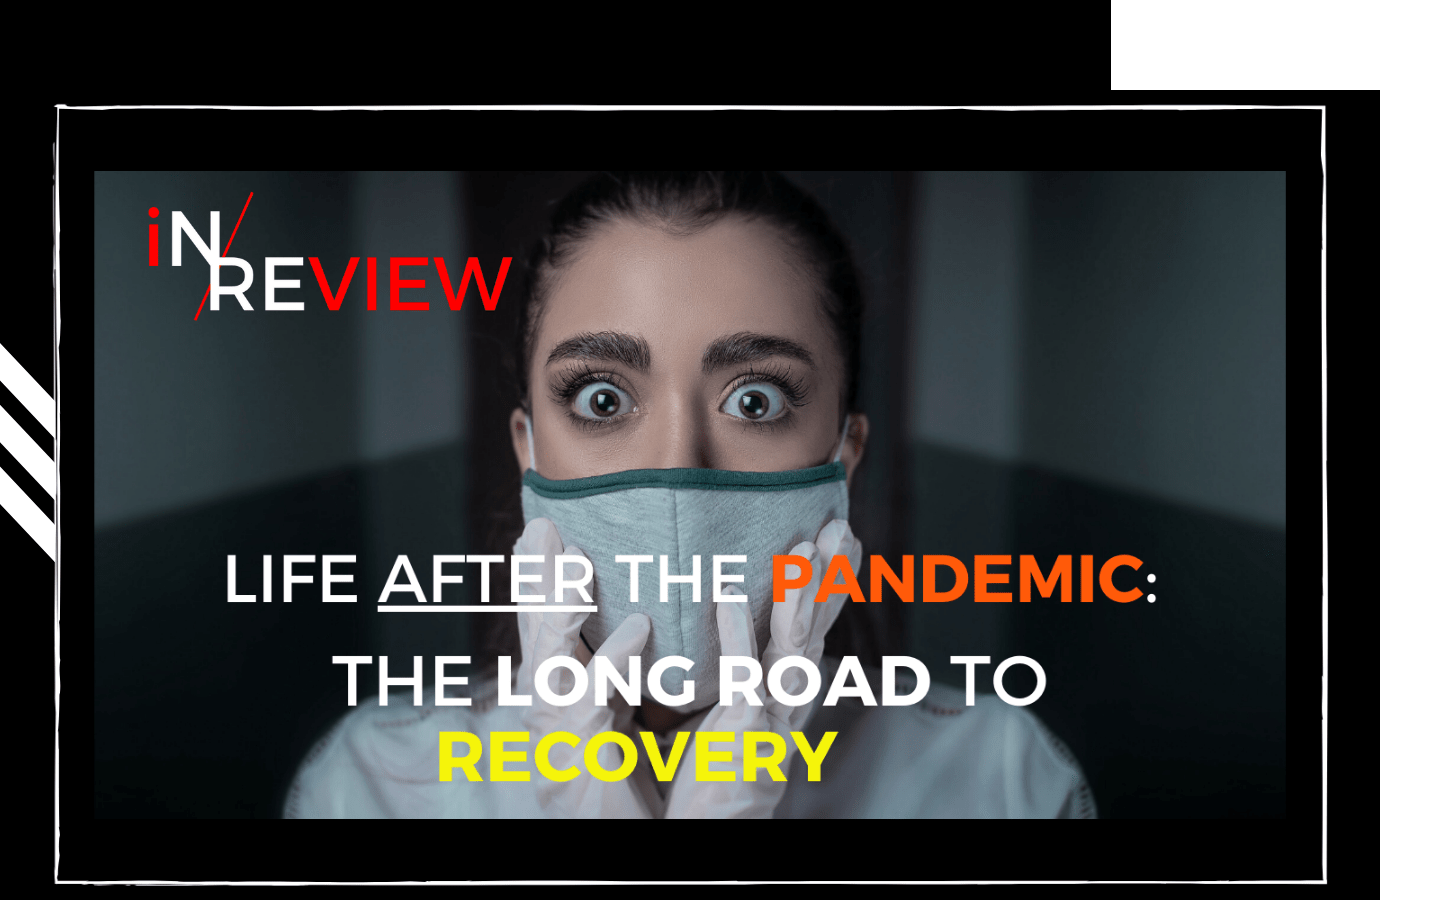 Life after the pandemic: What will change after Covid-19, lockdowns and restrictions end?